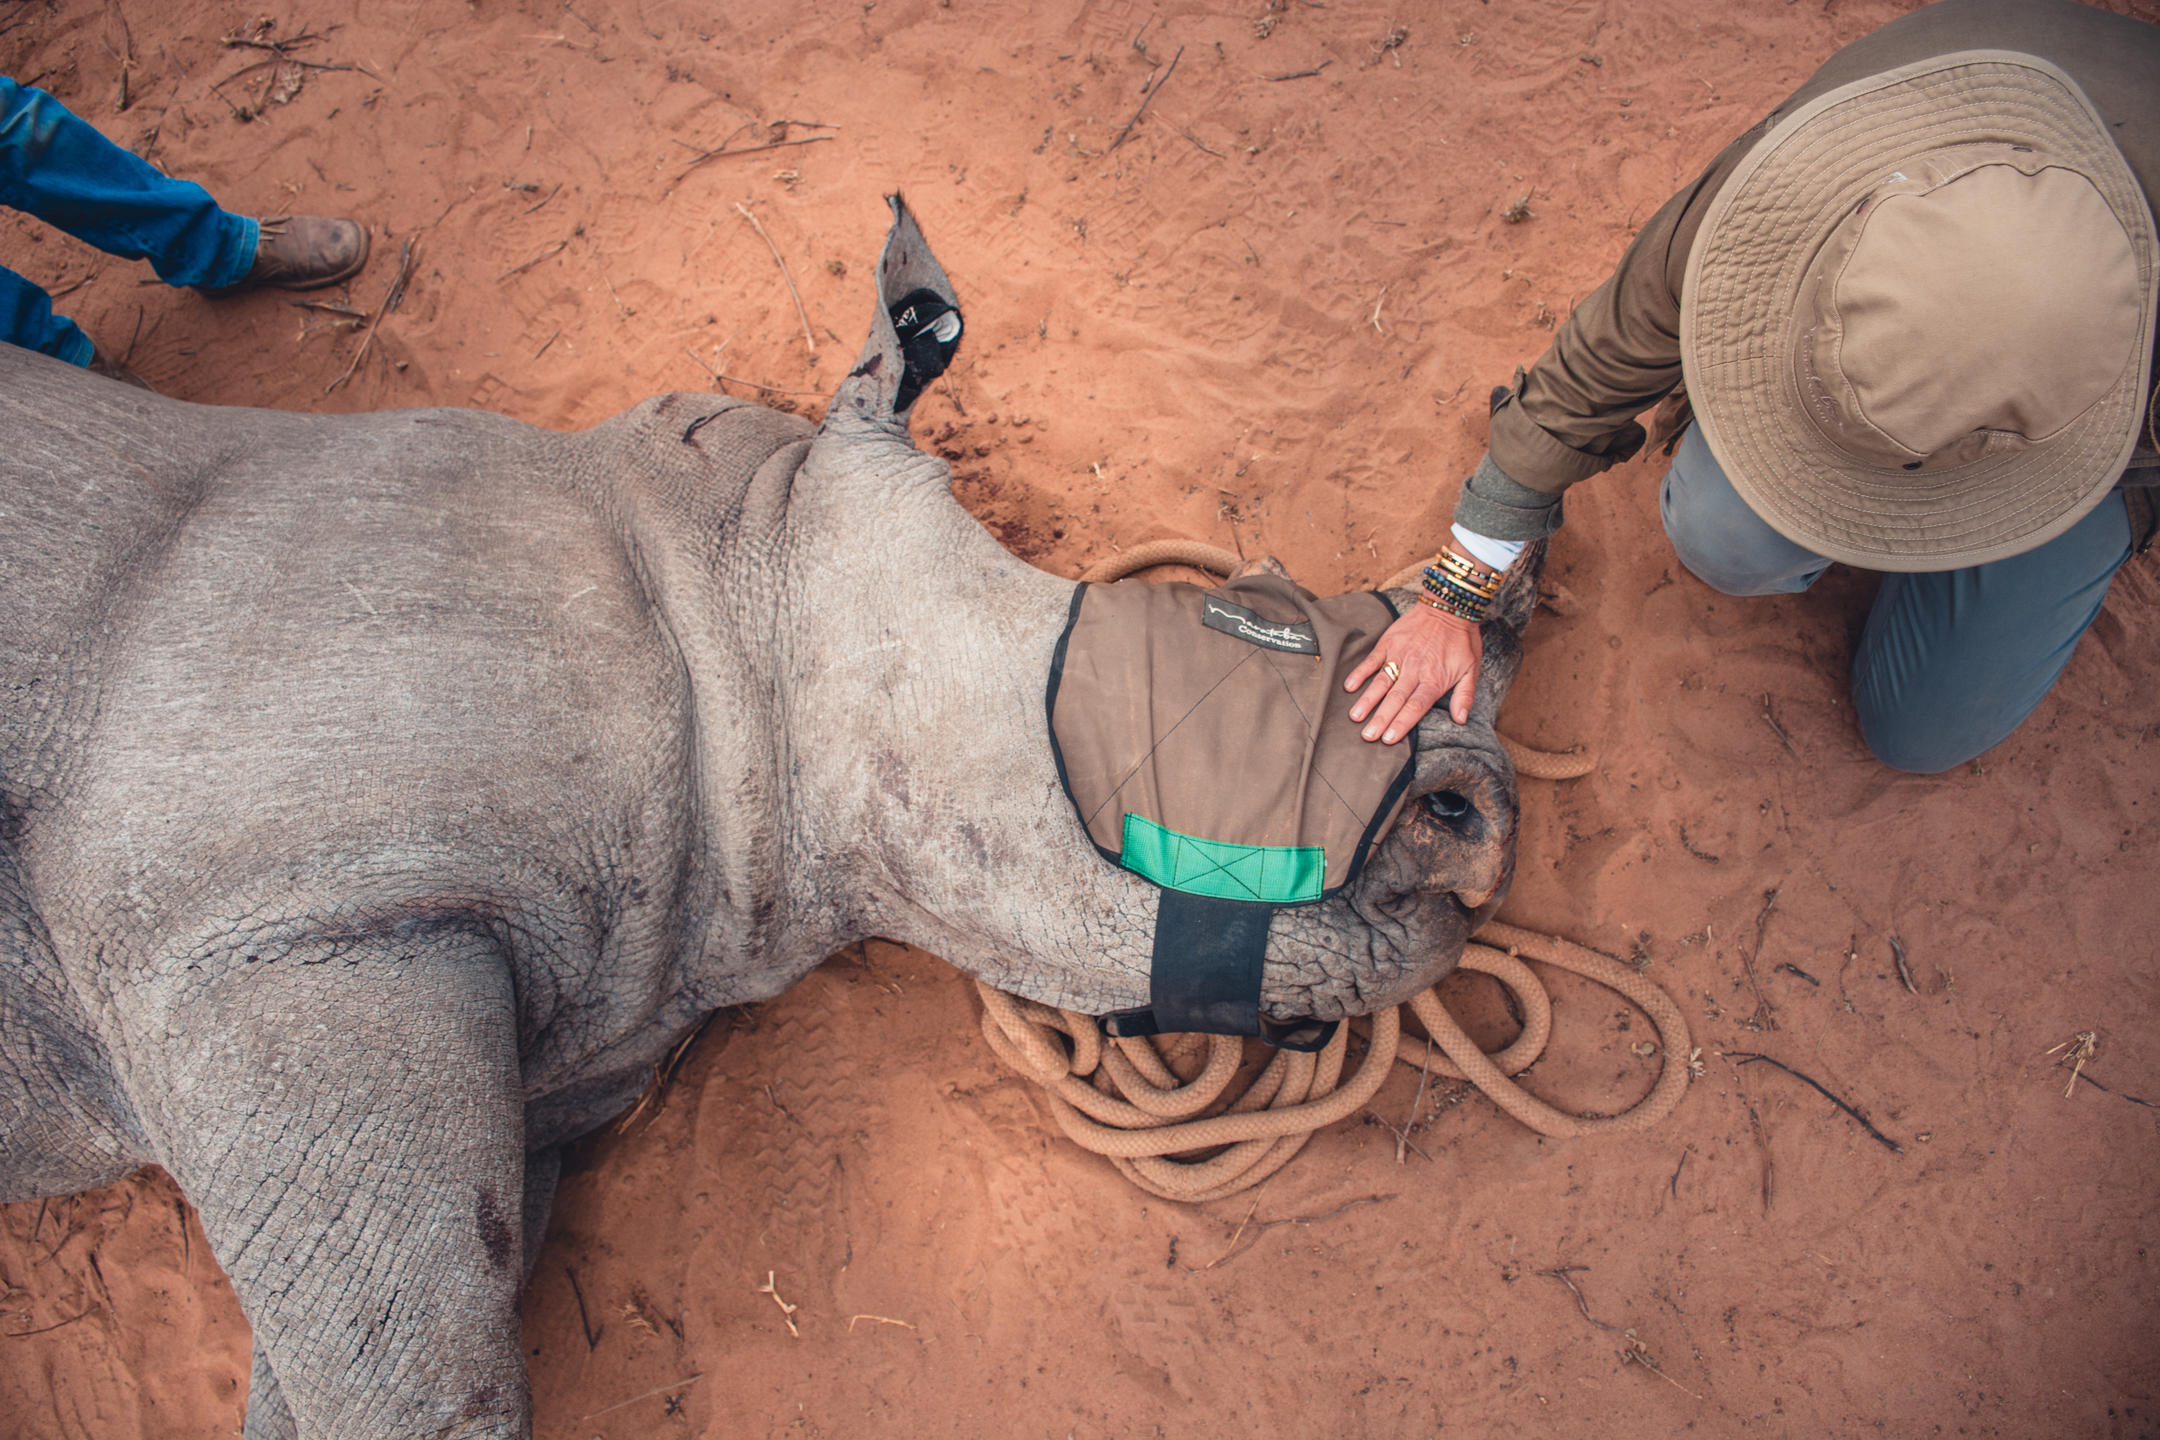 Marataba Conservation Camps has opened new retreats in a new section of the Marakele National Park in South Africa's Limpopo Province.